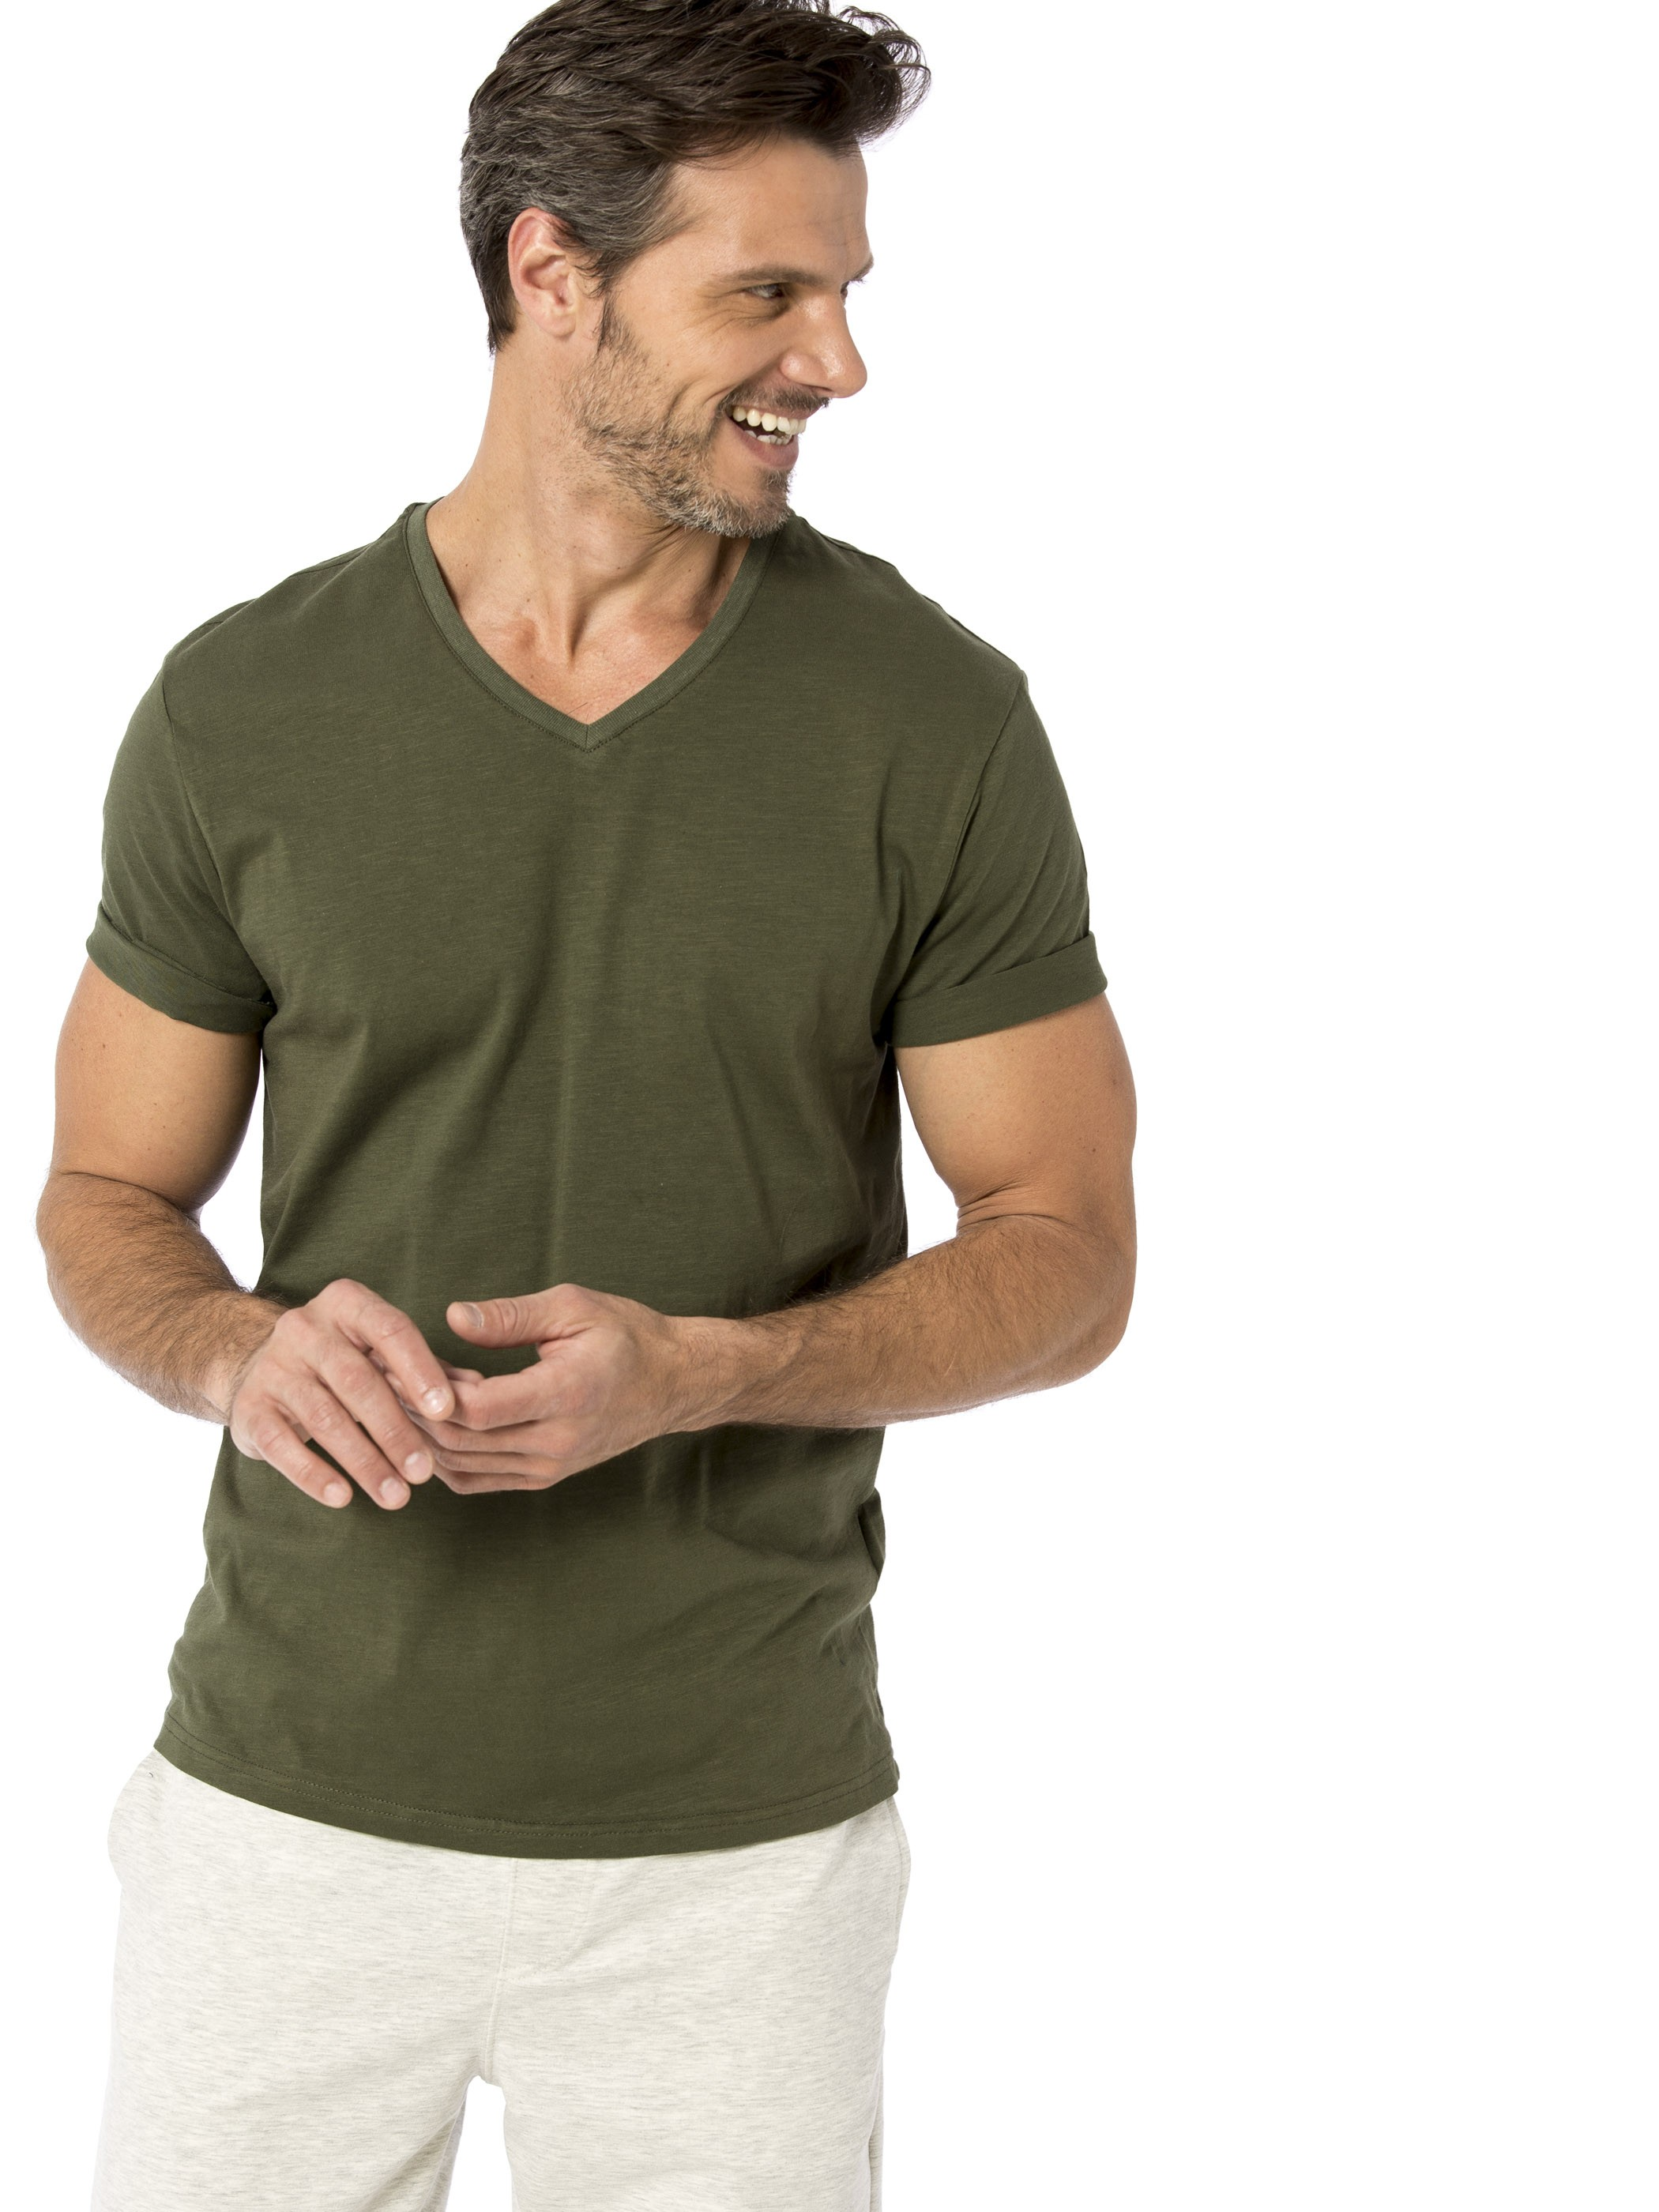 GREEN - V-Neck and Short Sleeve Cotton T-Shirt - 8S1290Z8